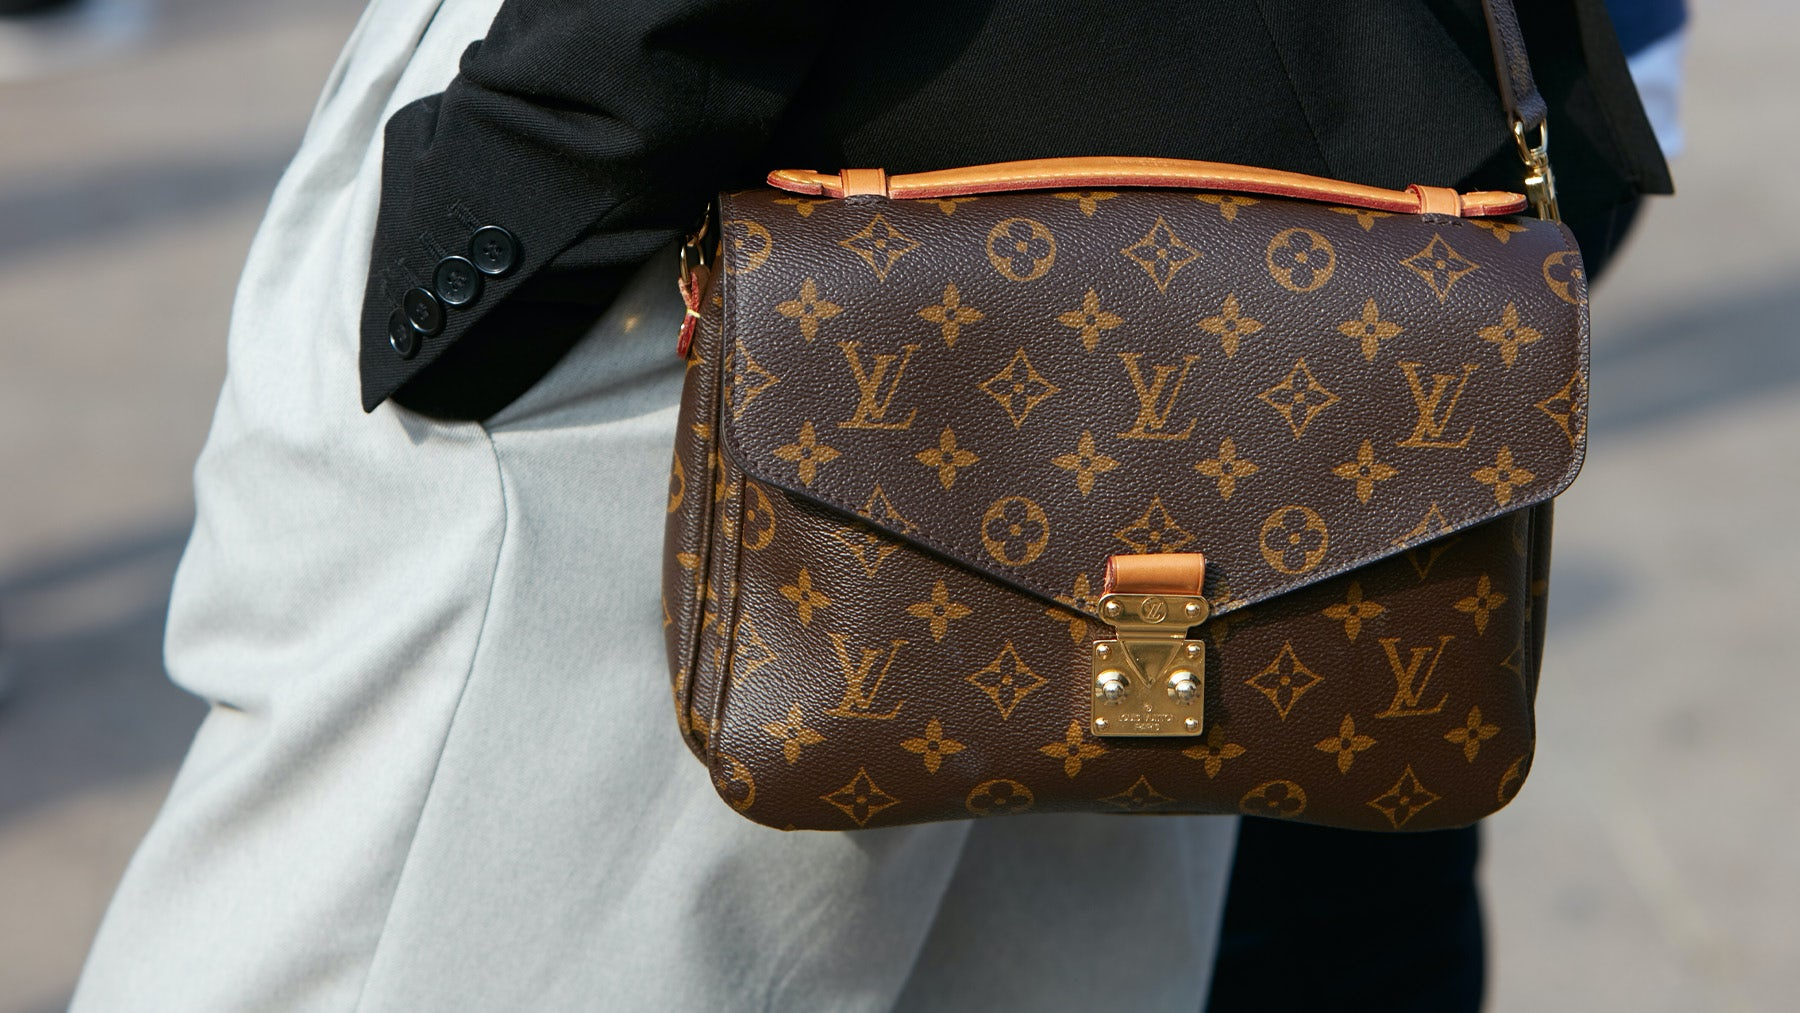 LVMH is cracking down on counterfeits. Shutterstock.